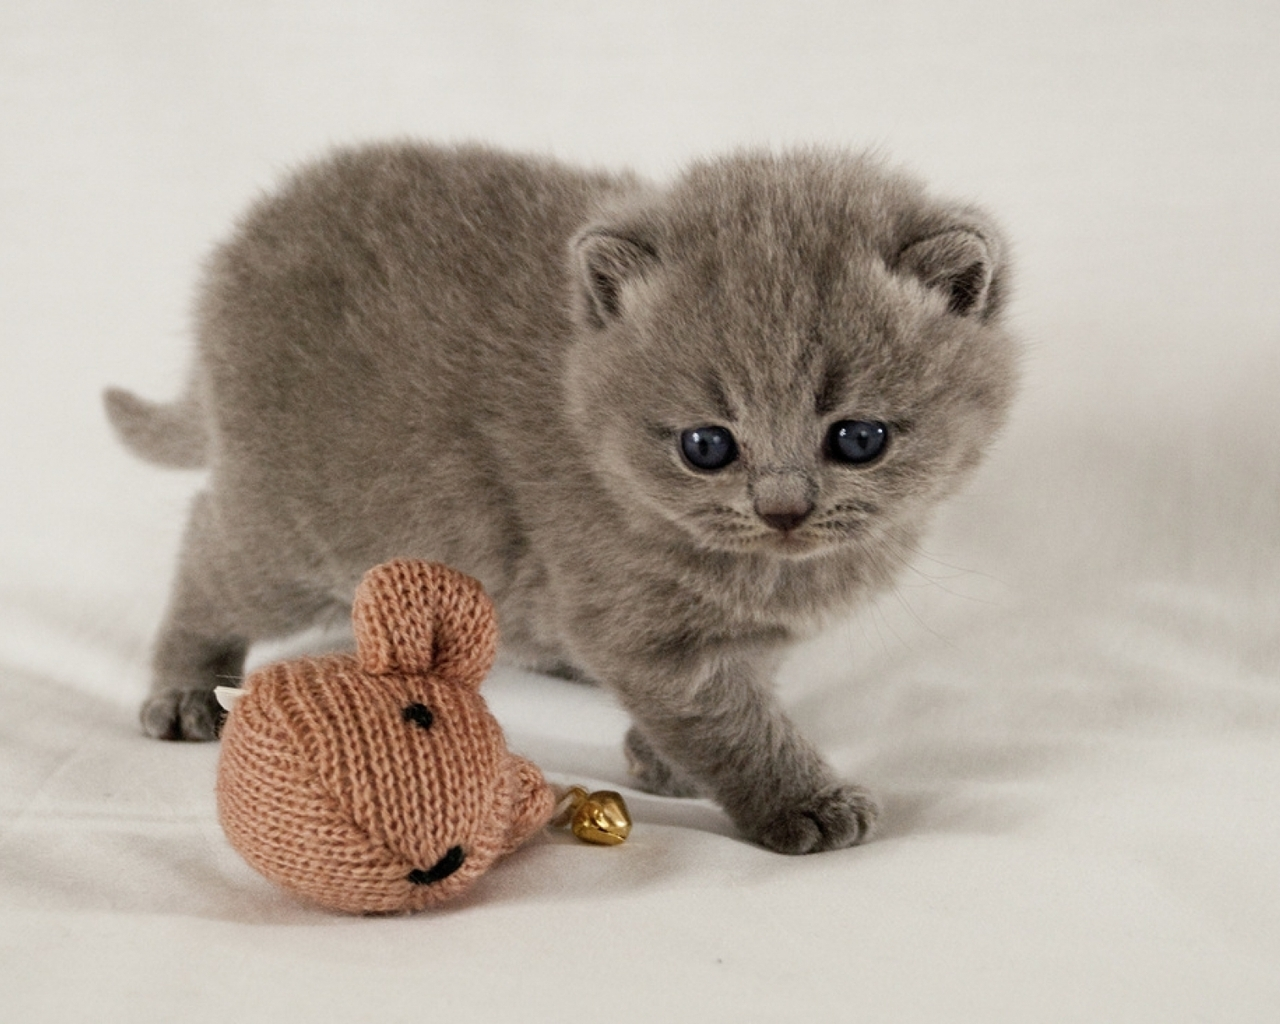 Scottish Fold Kitten for 1280 x 1024 resolution